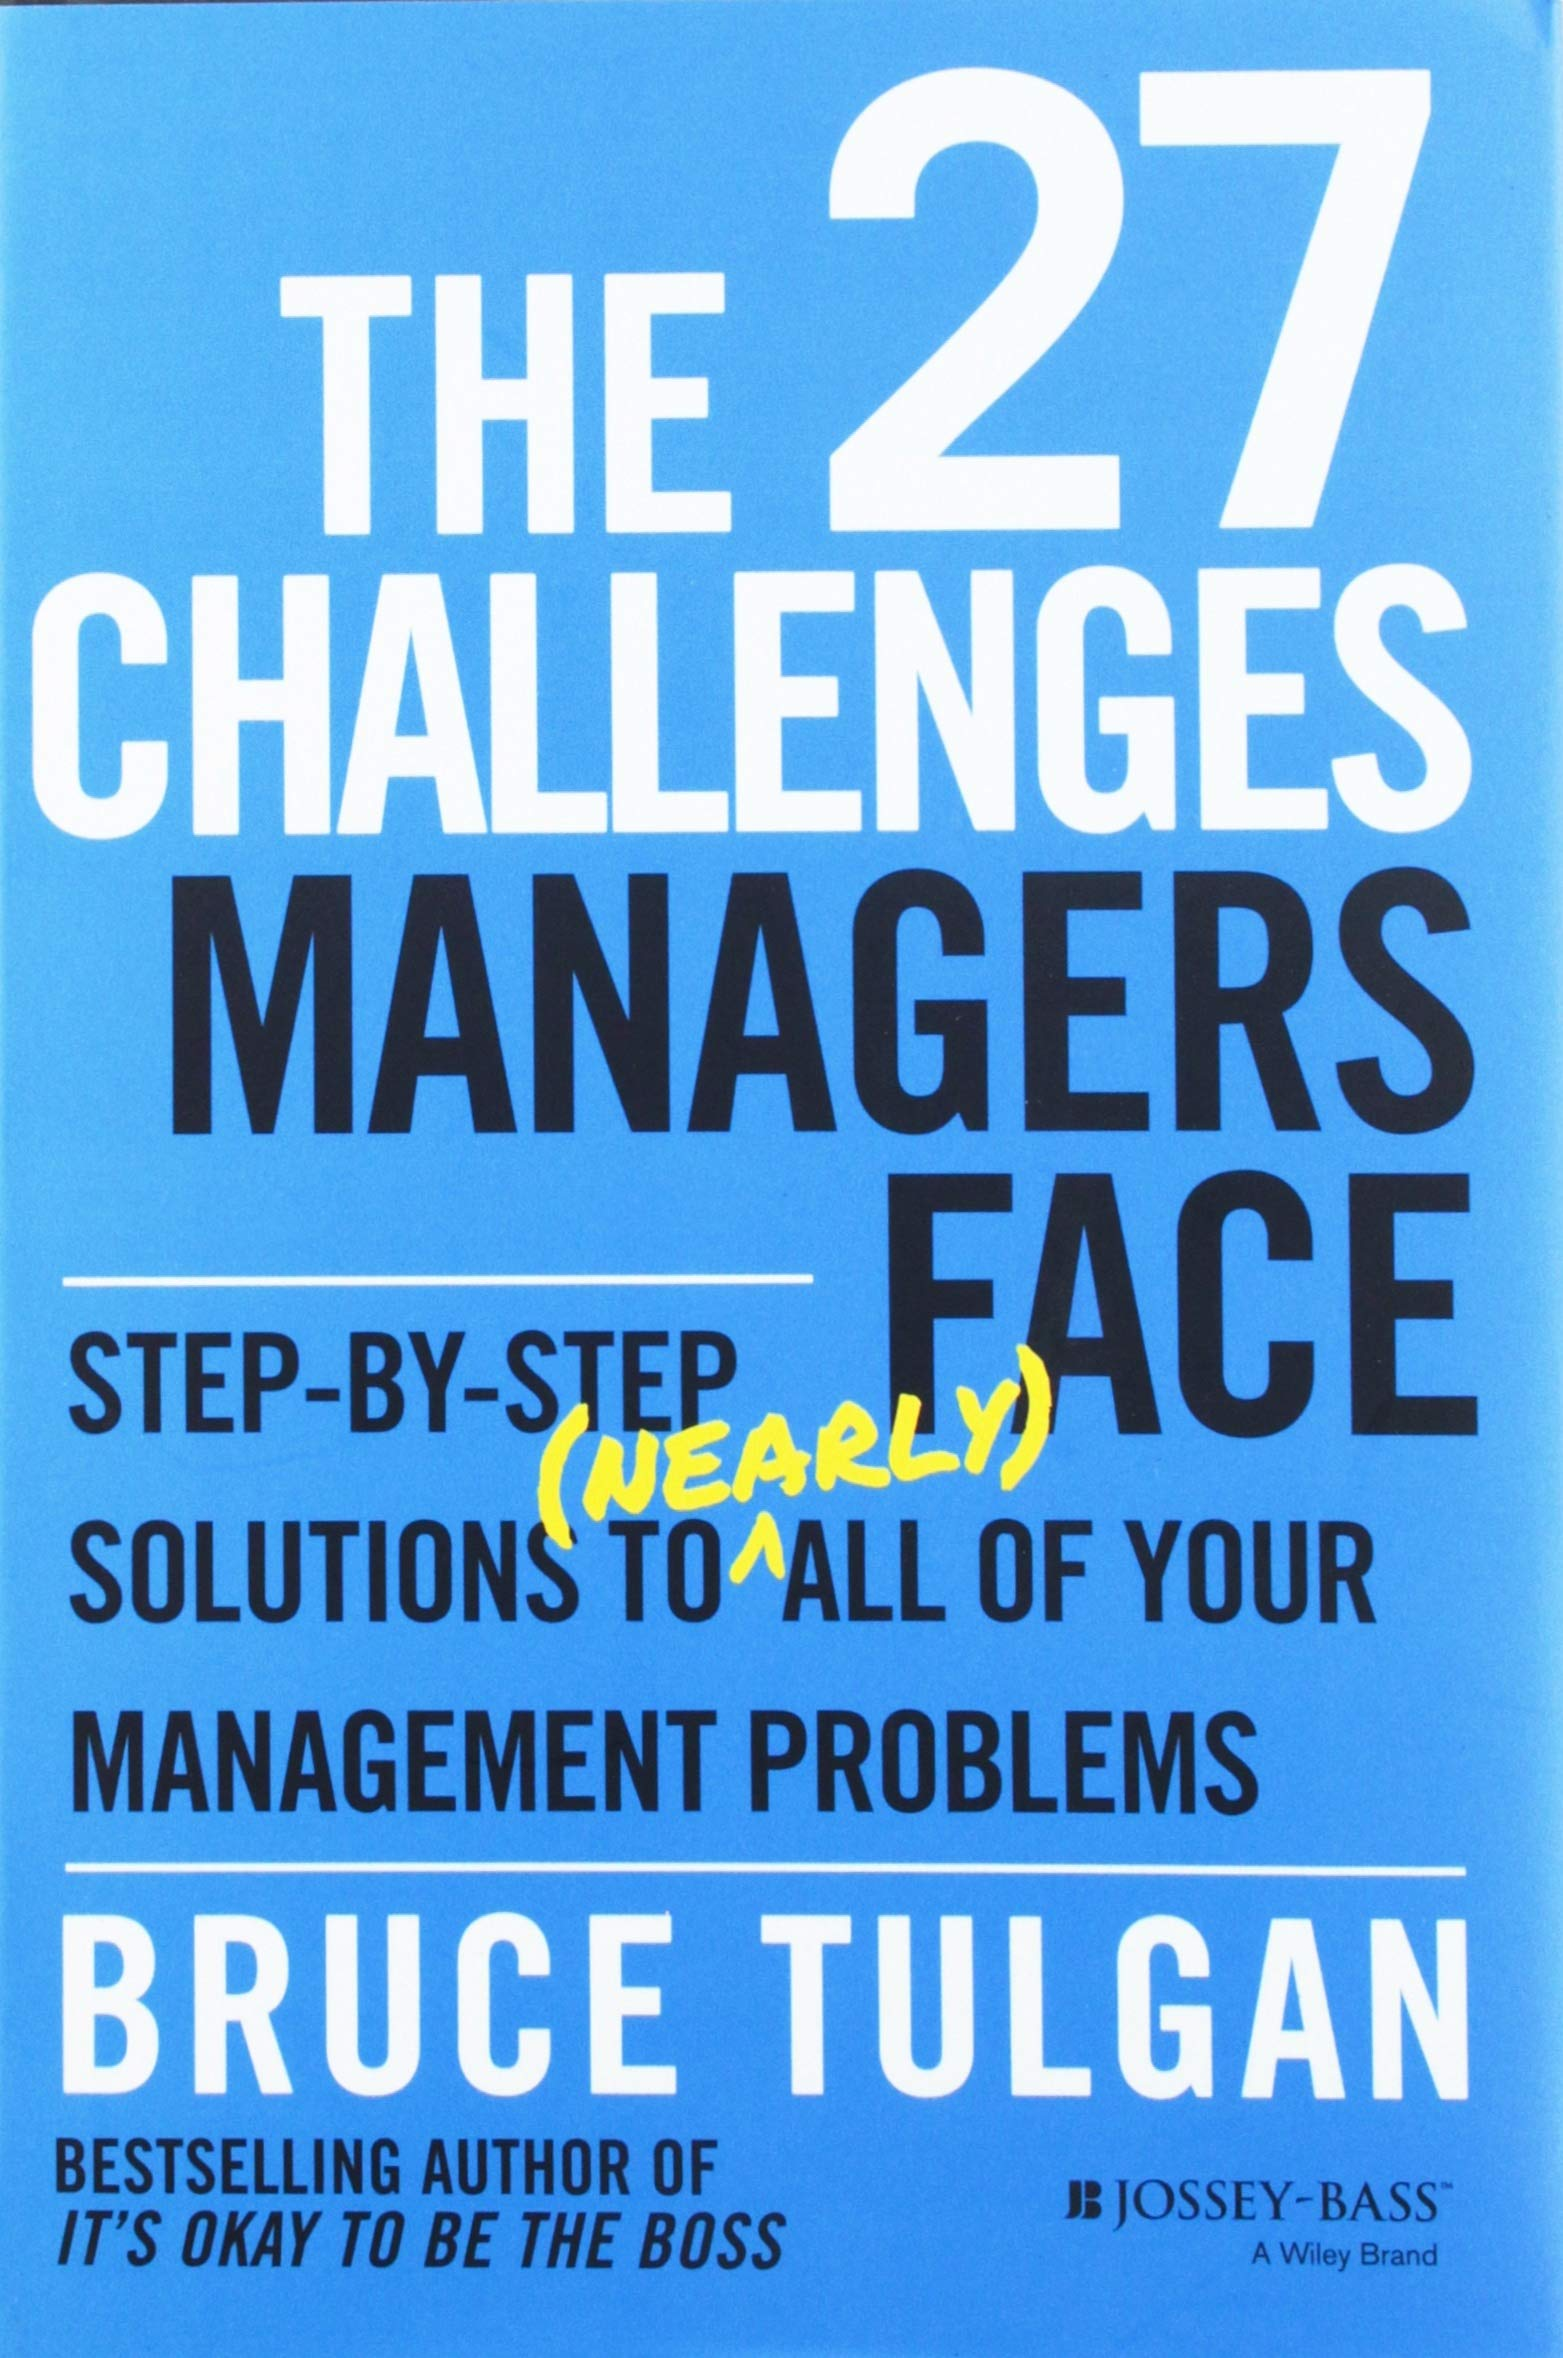 The 27 Challenges Managers Face: Step-by-Step Solutions to